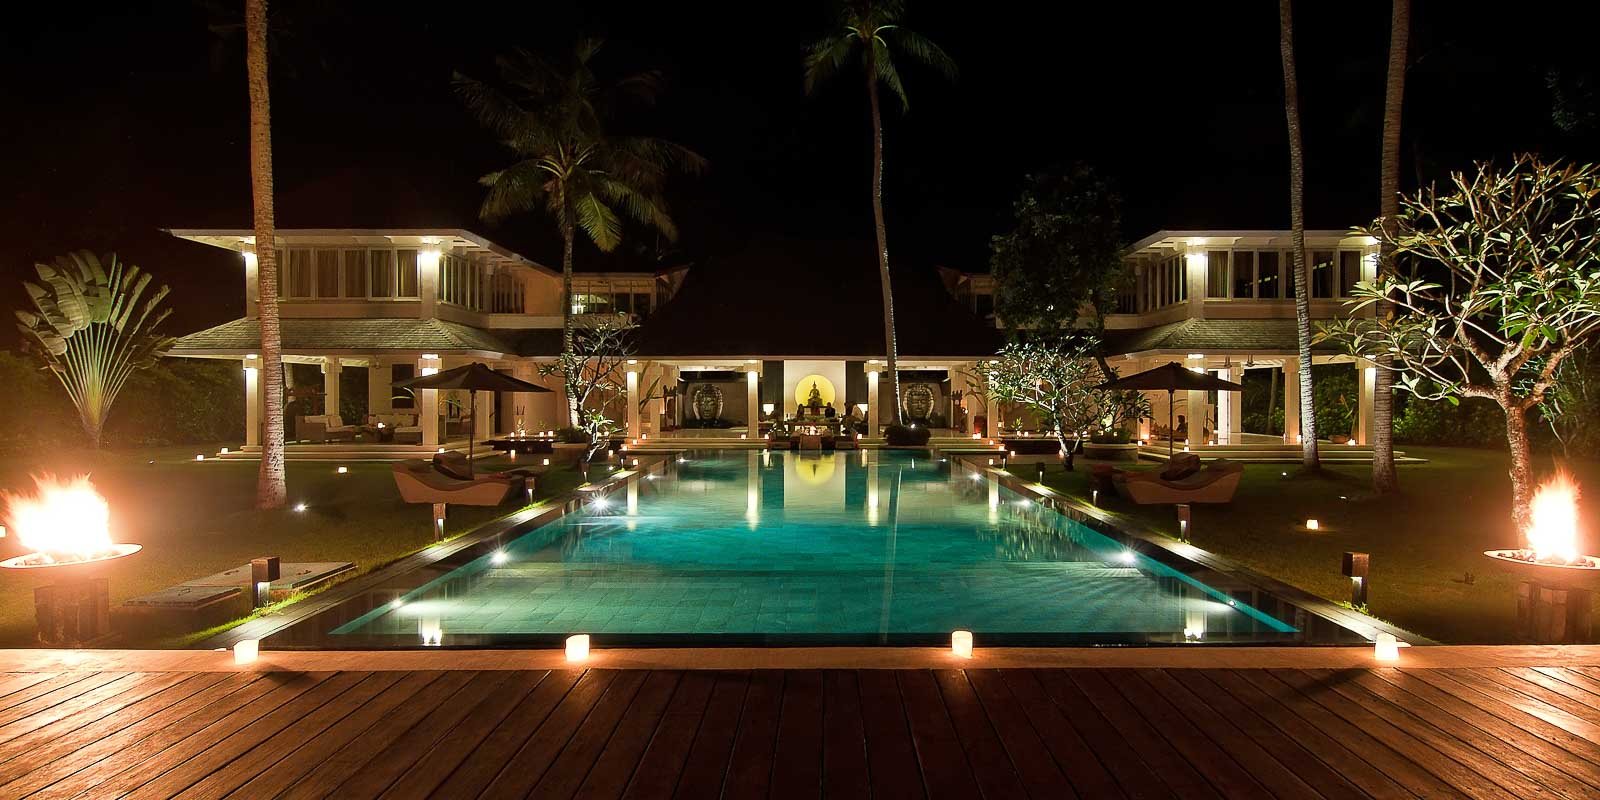 villa-matahari-main-building-swimming-pool-night